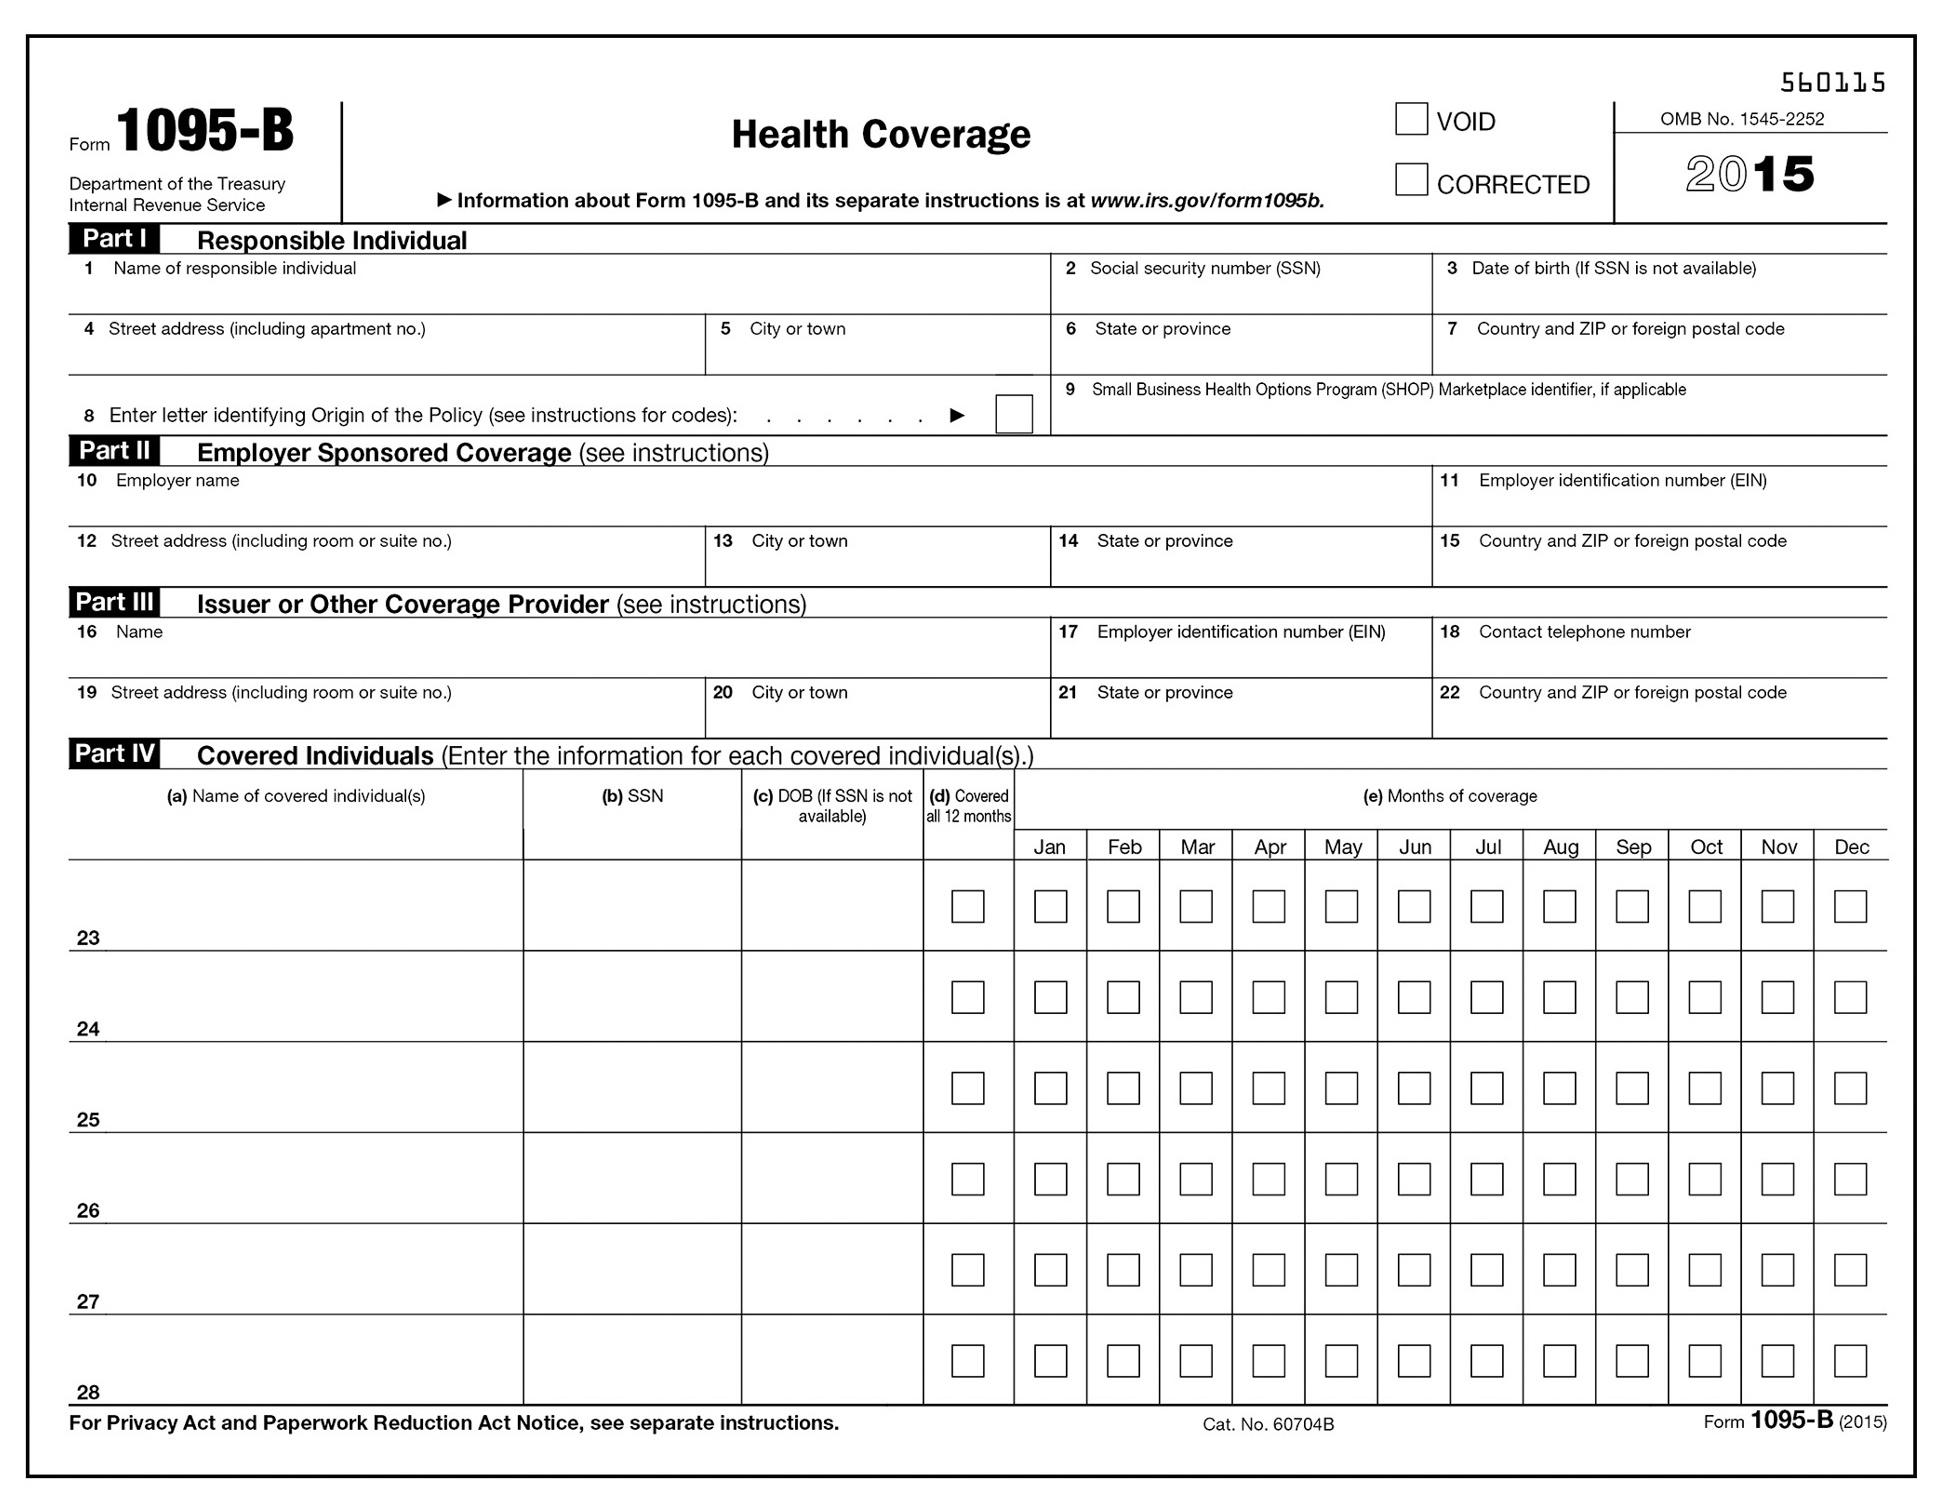 Taxpayers Confused By Late Health Law Forms